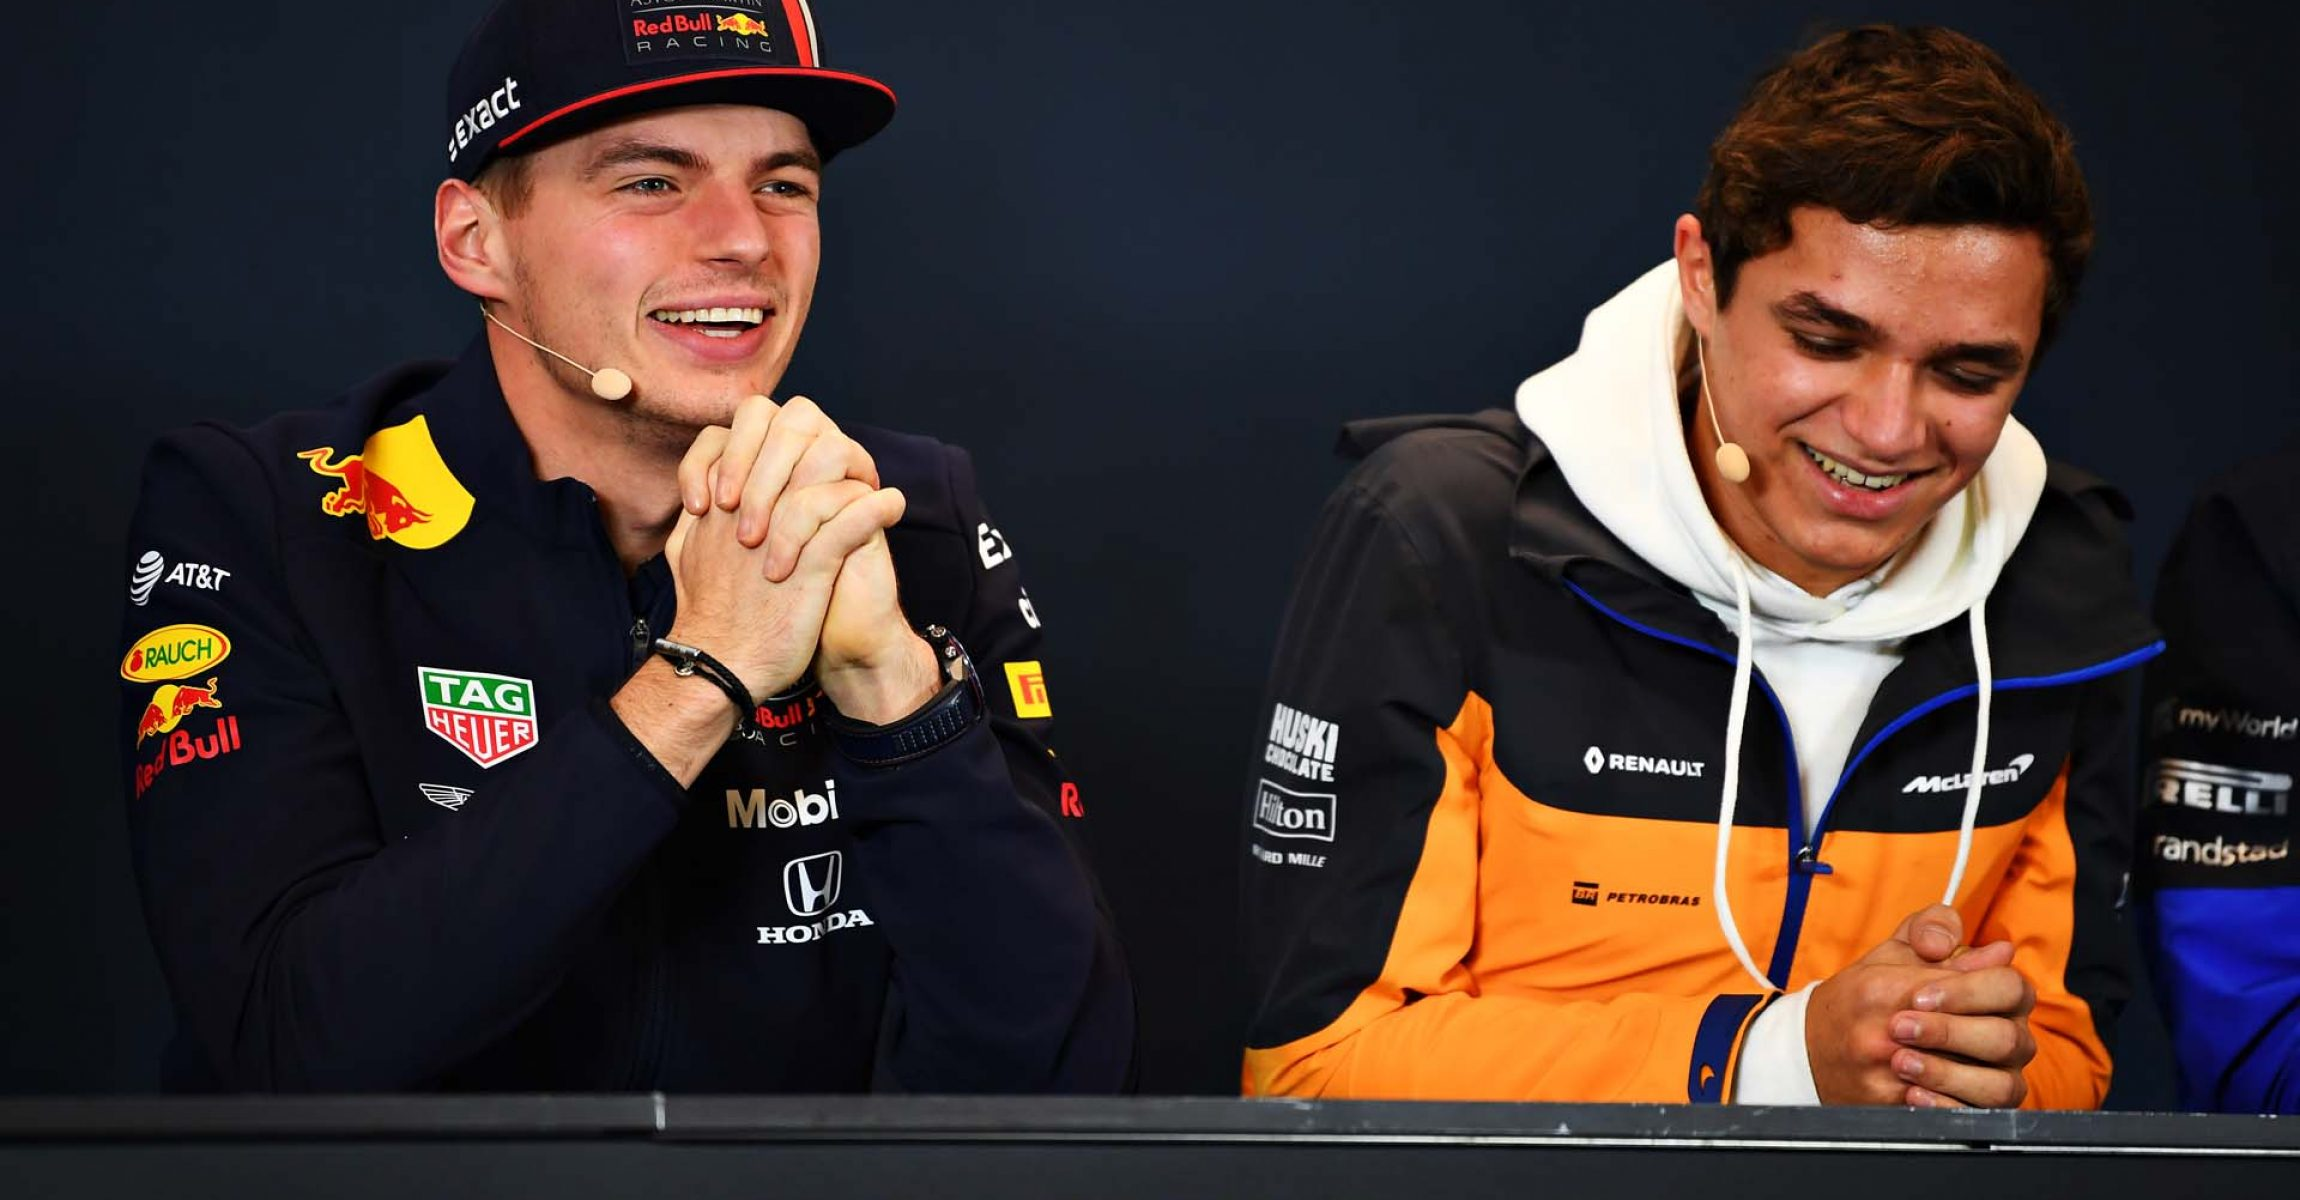 AUSTIN, TEXAS - OCTOBER 31: Max Verstappen of Netherlands and Red Bull Racing talks in the Drivers Press Conference with Lando Norris of Great Britain and McLaren F1 during previews ahead of the F1 Grand Prix of USA at Circuit of The Americas on October 31, 2019 in Austin, Texas. (Photo by Clive Mason/Getty Images) // Getty Images / Red Bull Content Pool // AP-221XYU3GW1W11 // Usage for editorial use only //